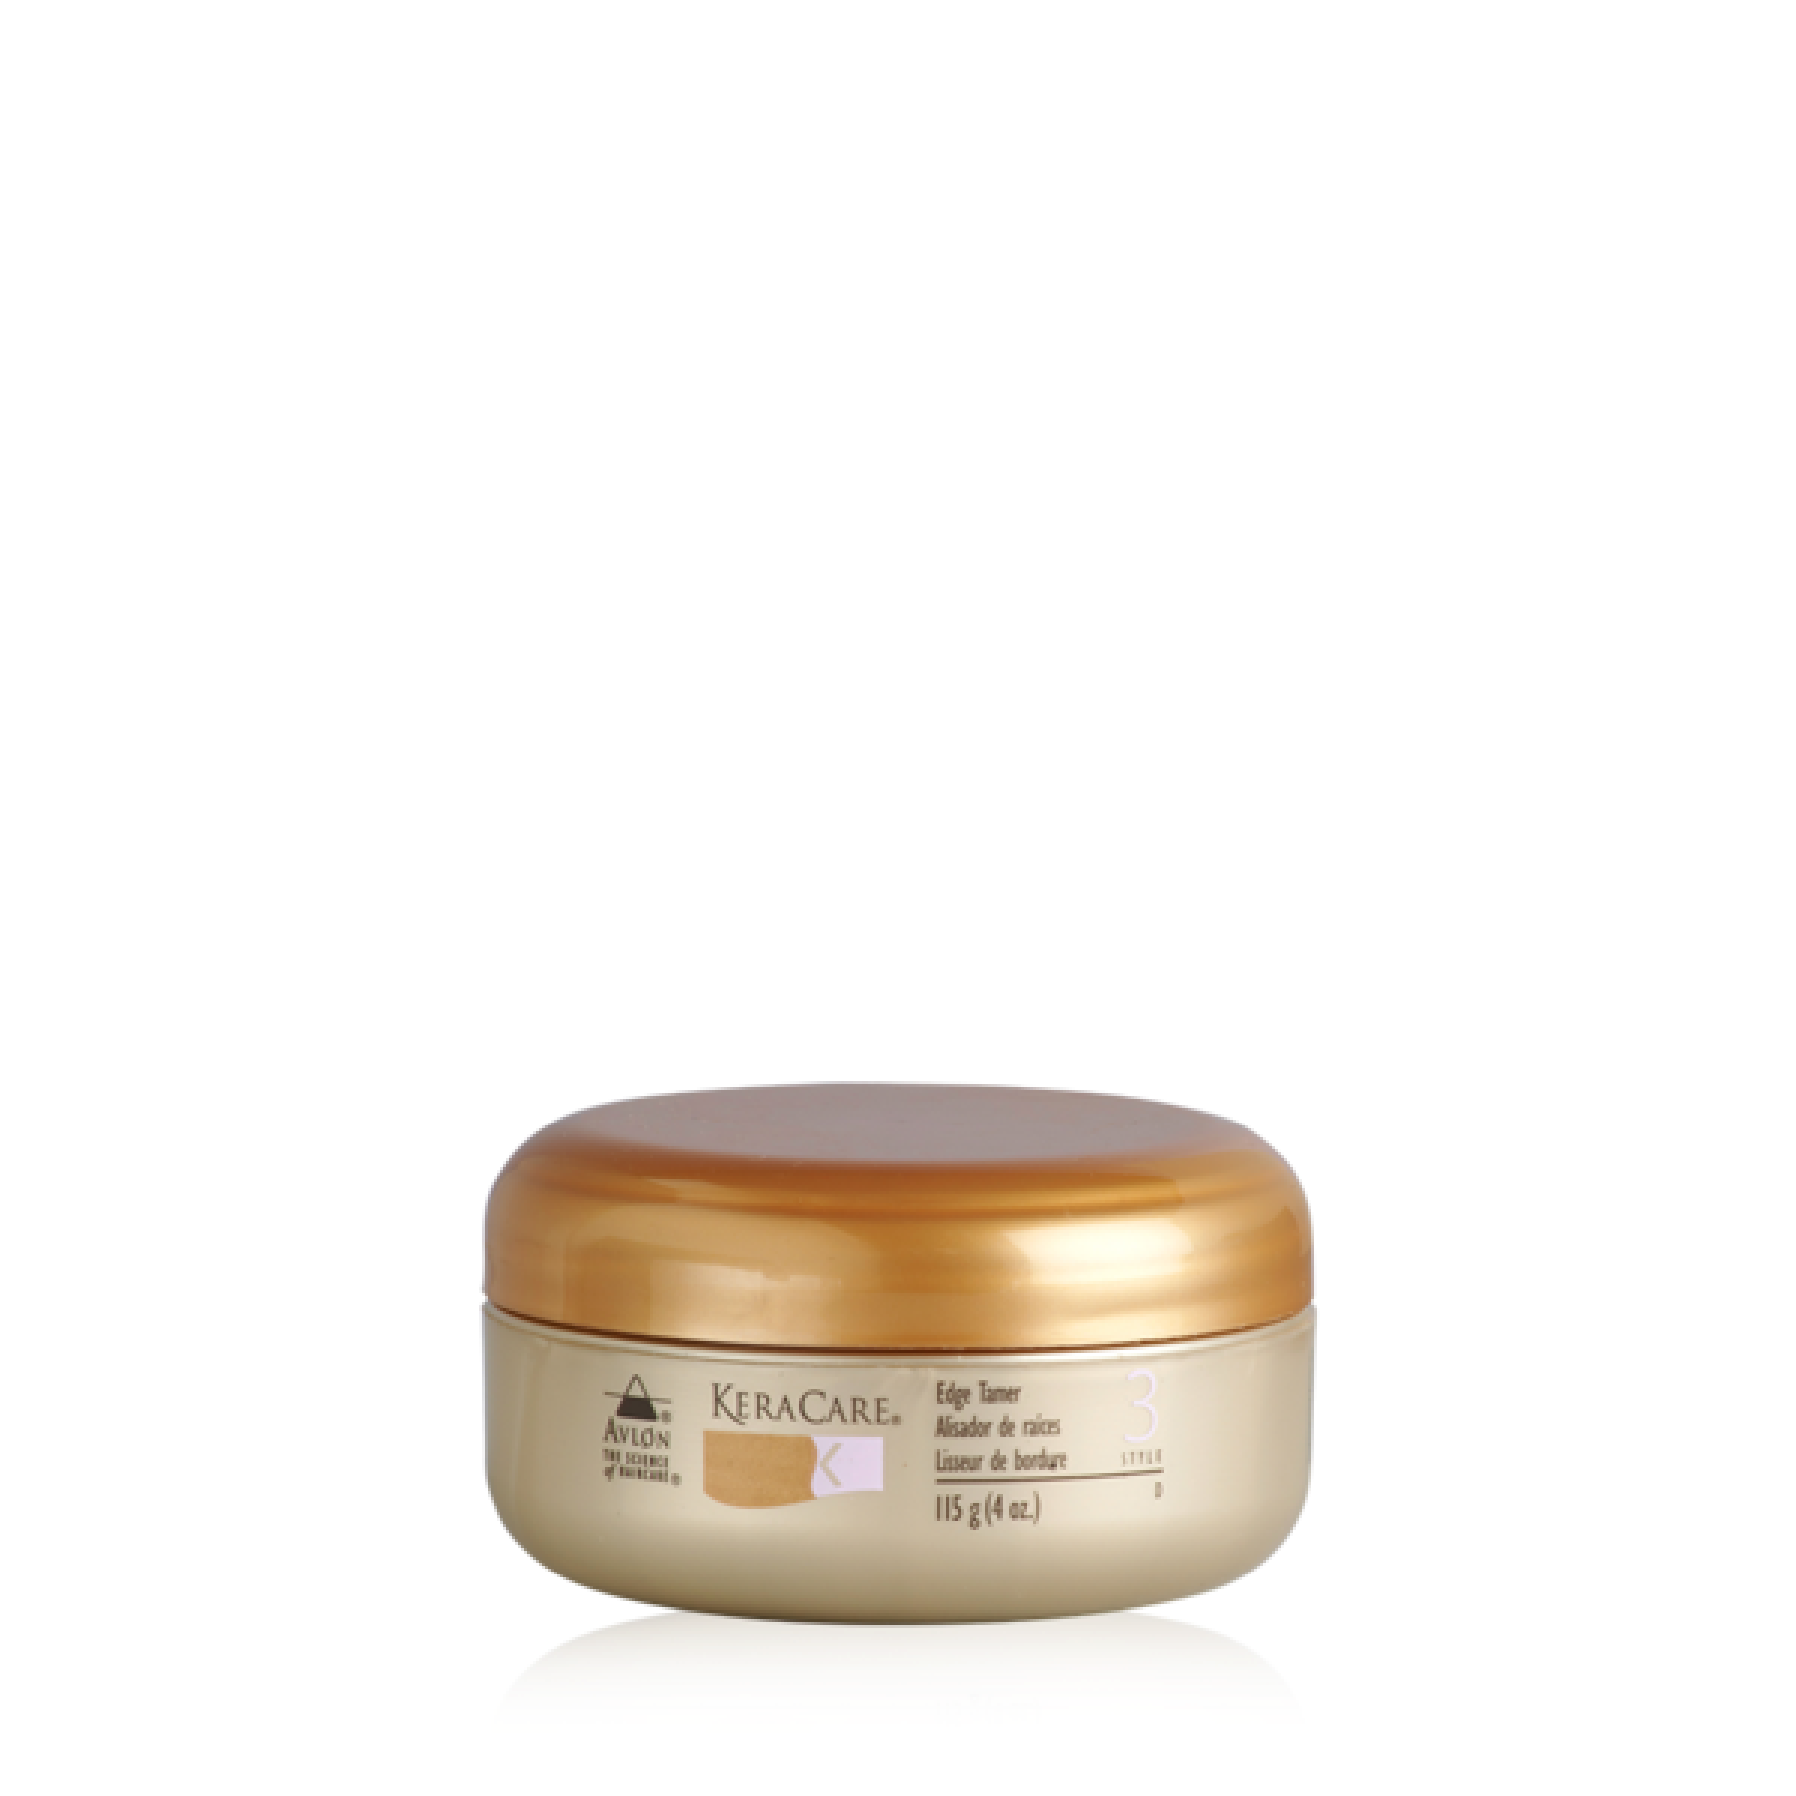 keracare-product-image-Edge-Tamer_600x